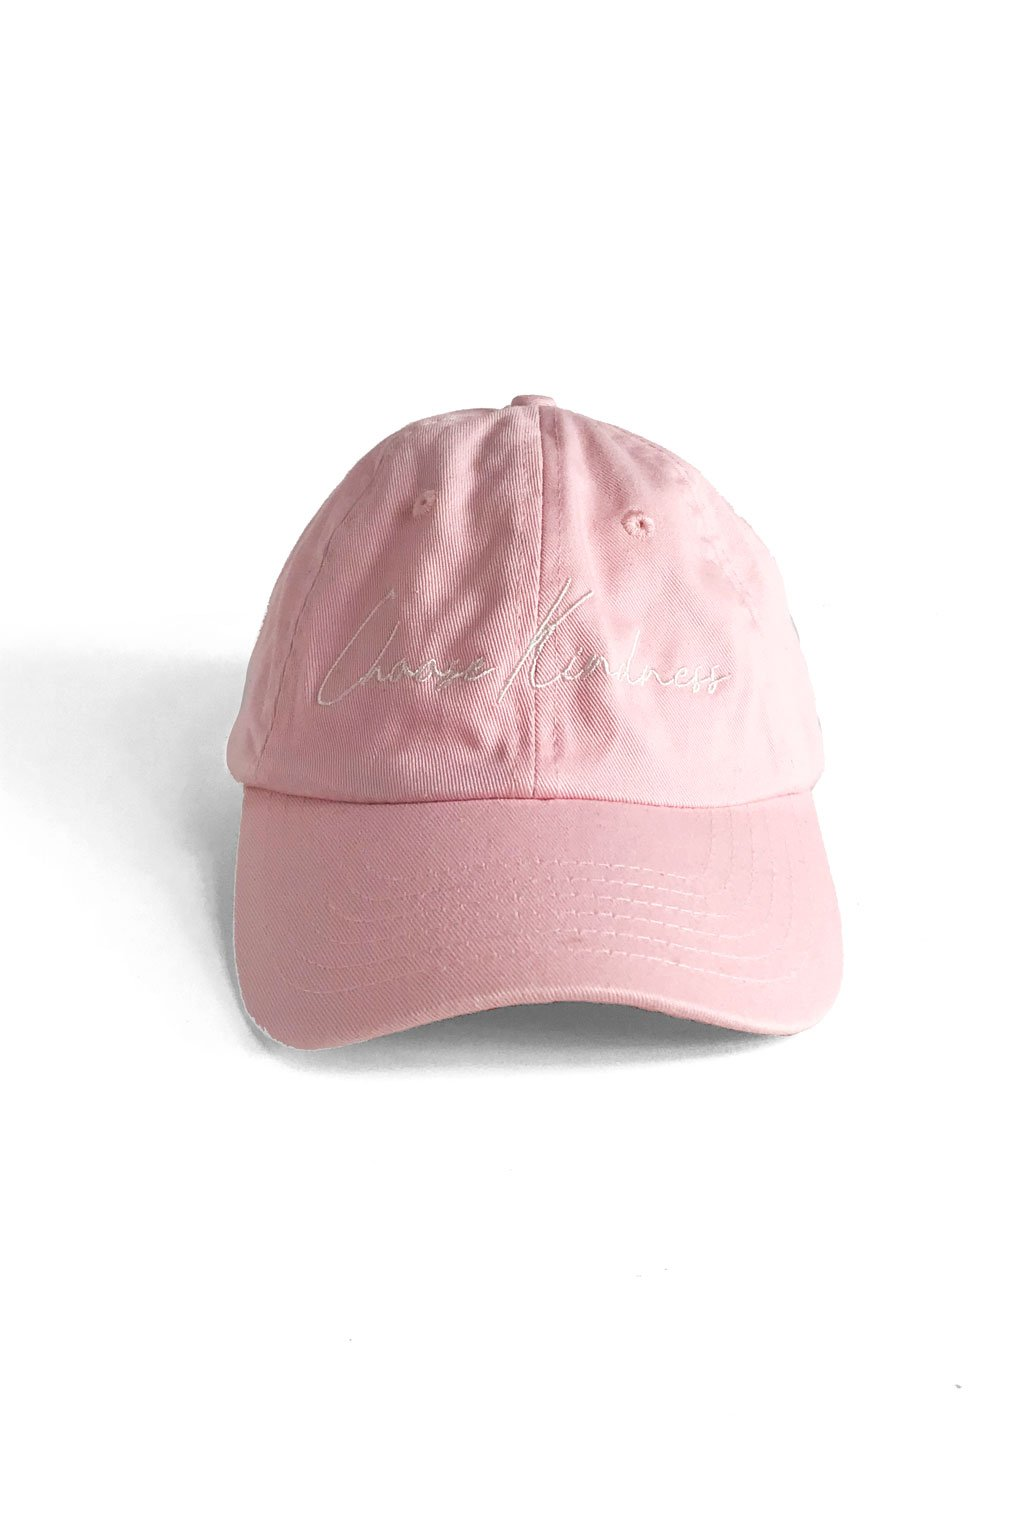 Pink Kindness Cap - Port 213.com